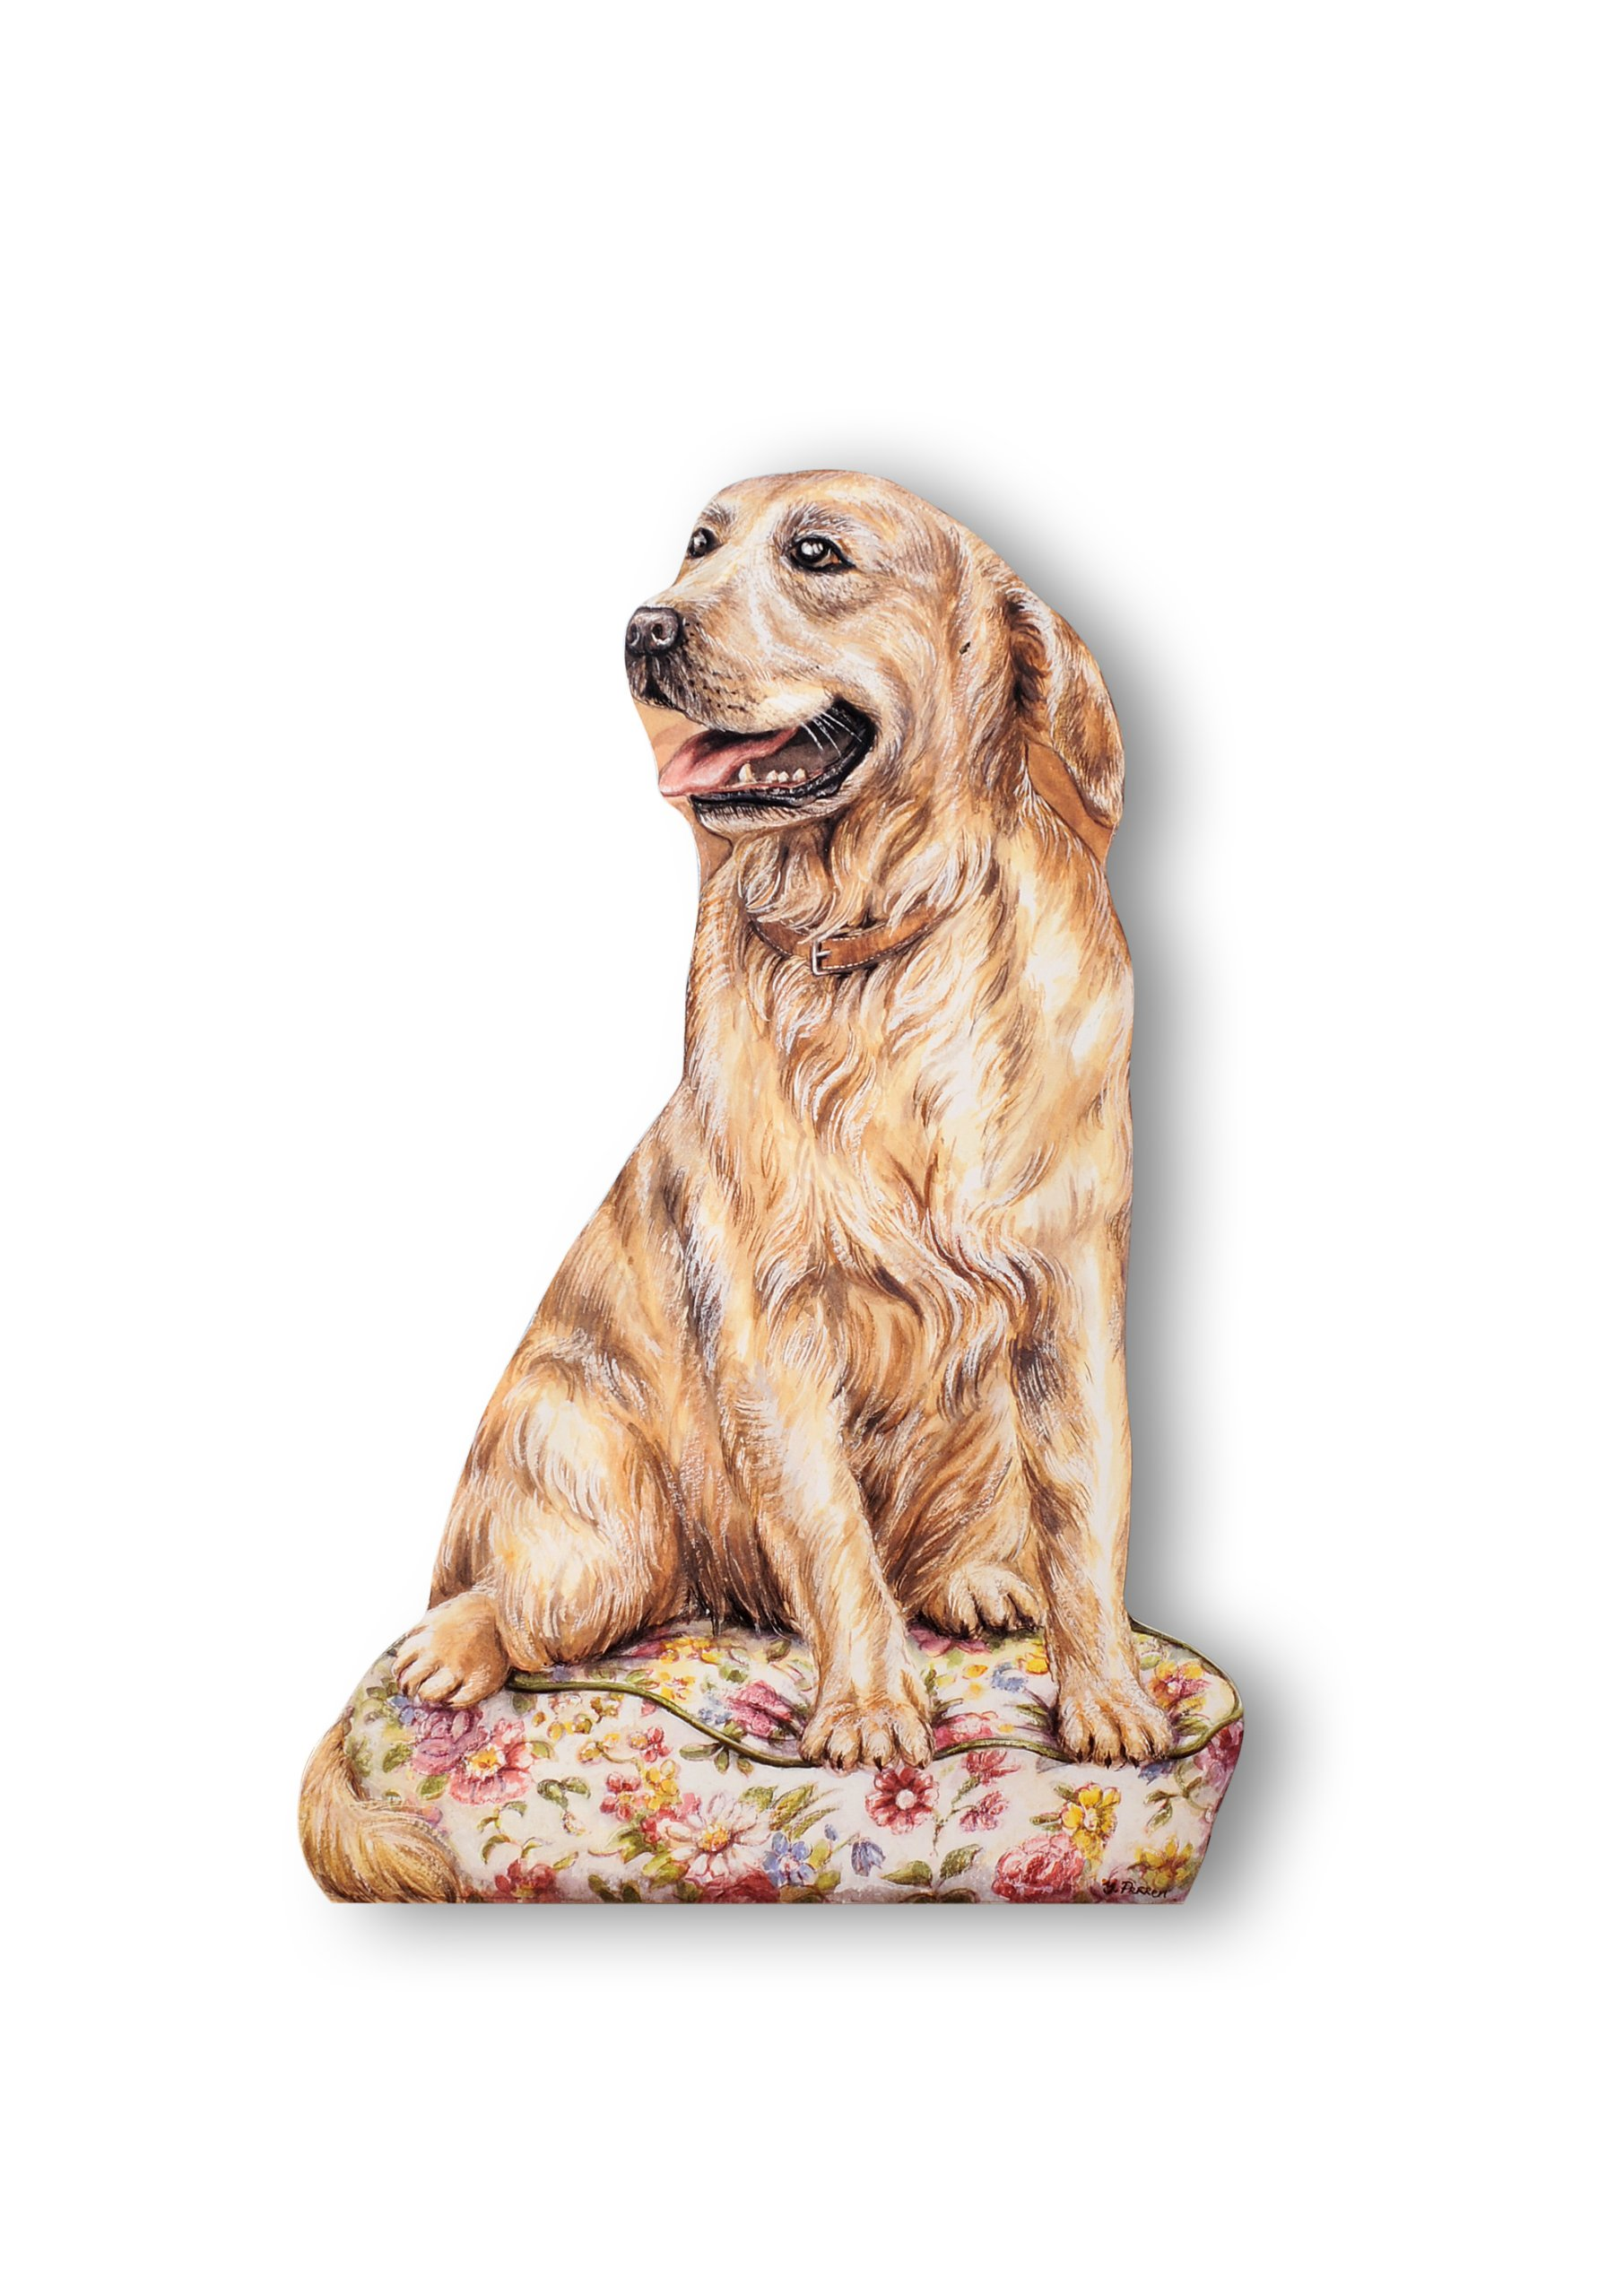 Stupell Home Décor Golden Retriever Decorative Dog Door Stop, 19 x 0.5 x 12.5, Proudly Made in USA